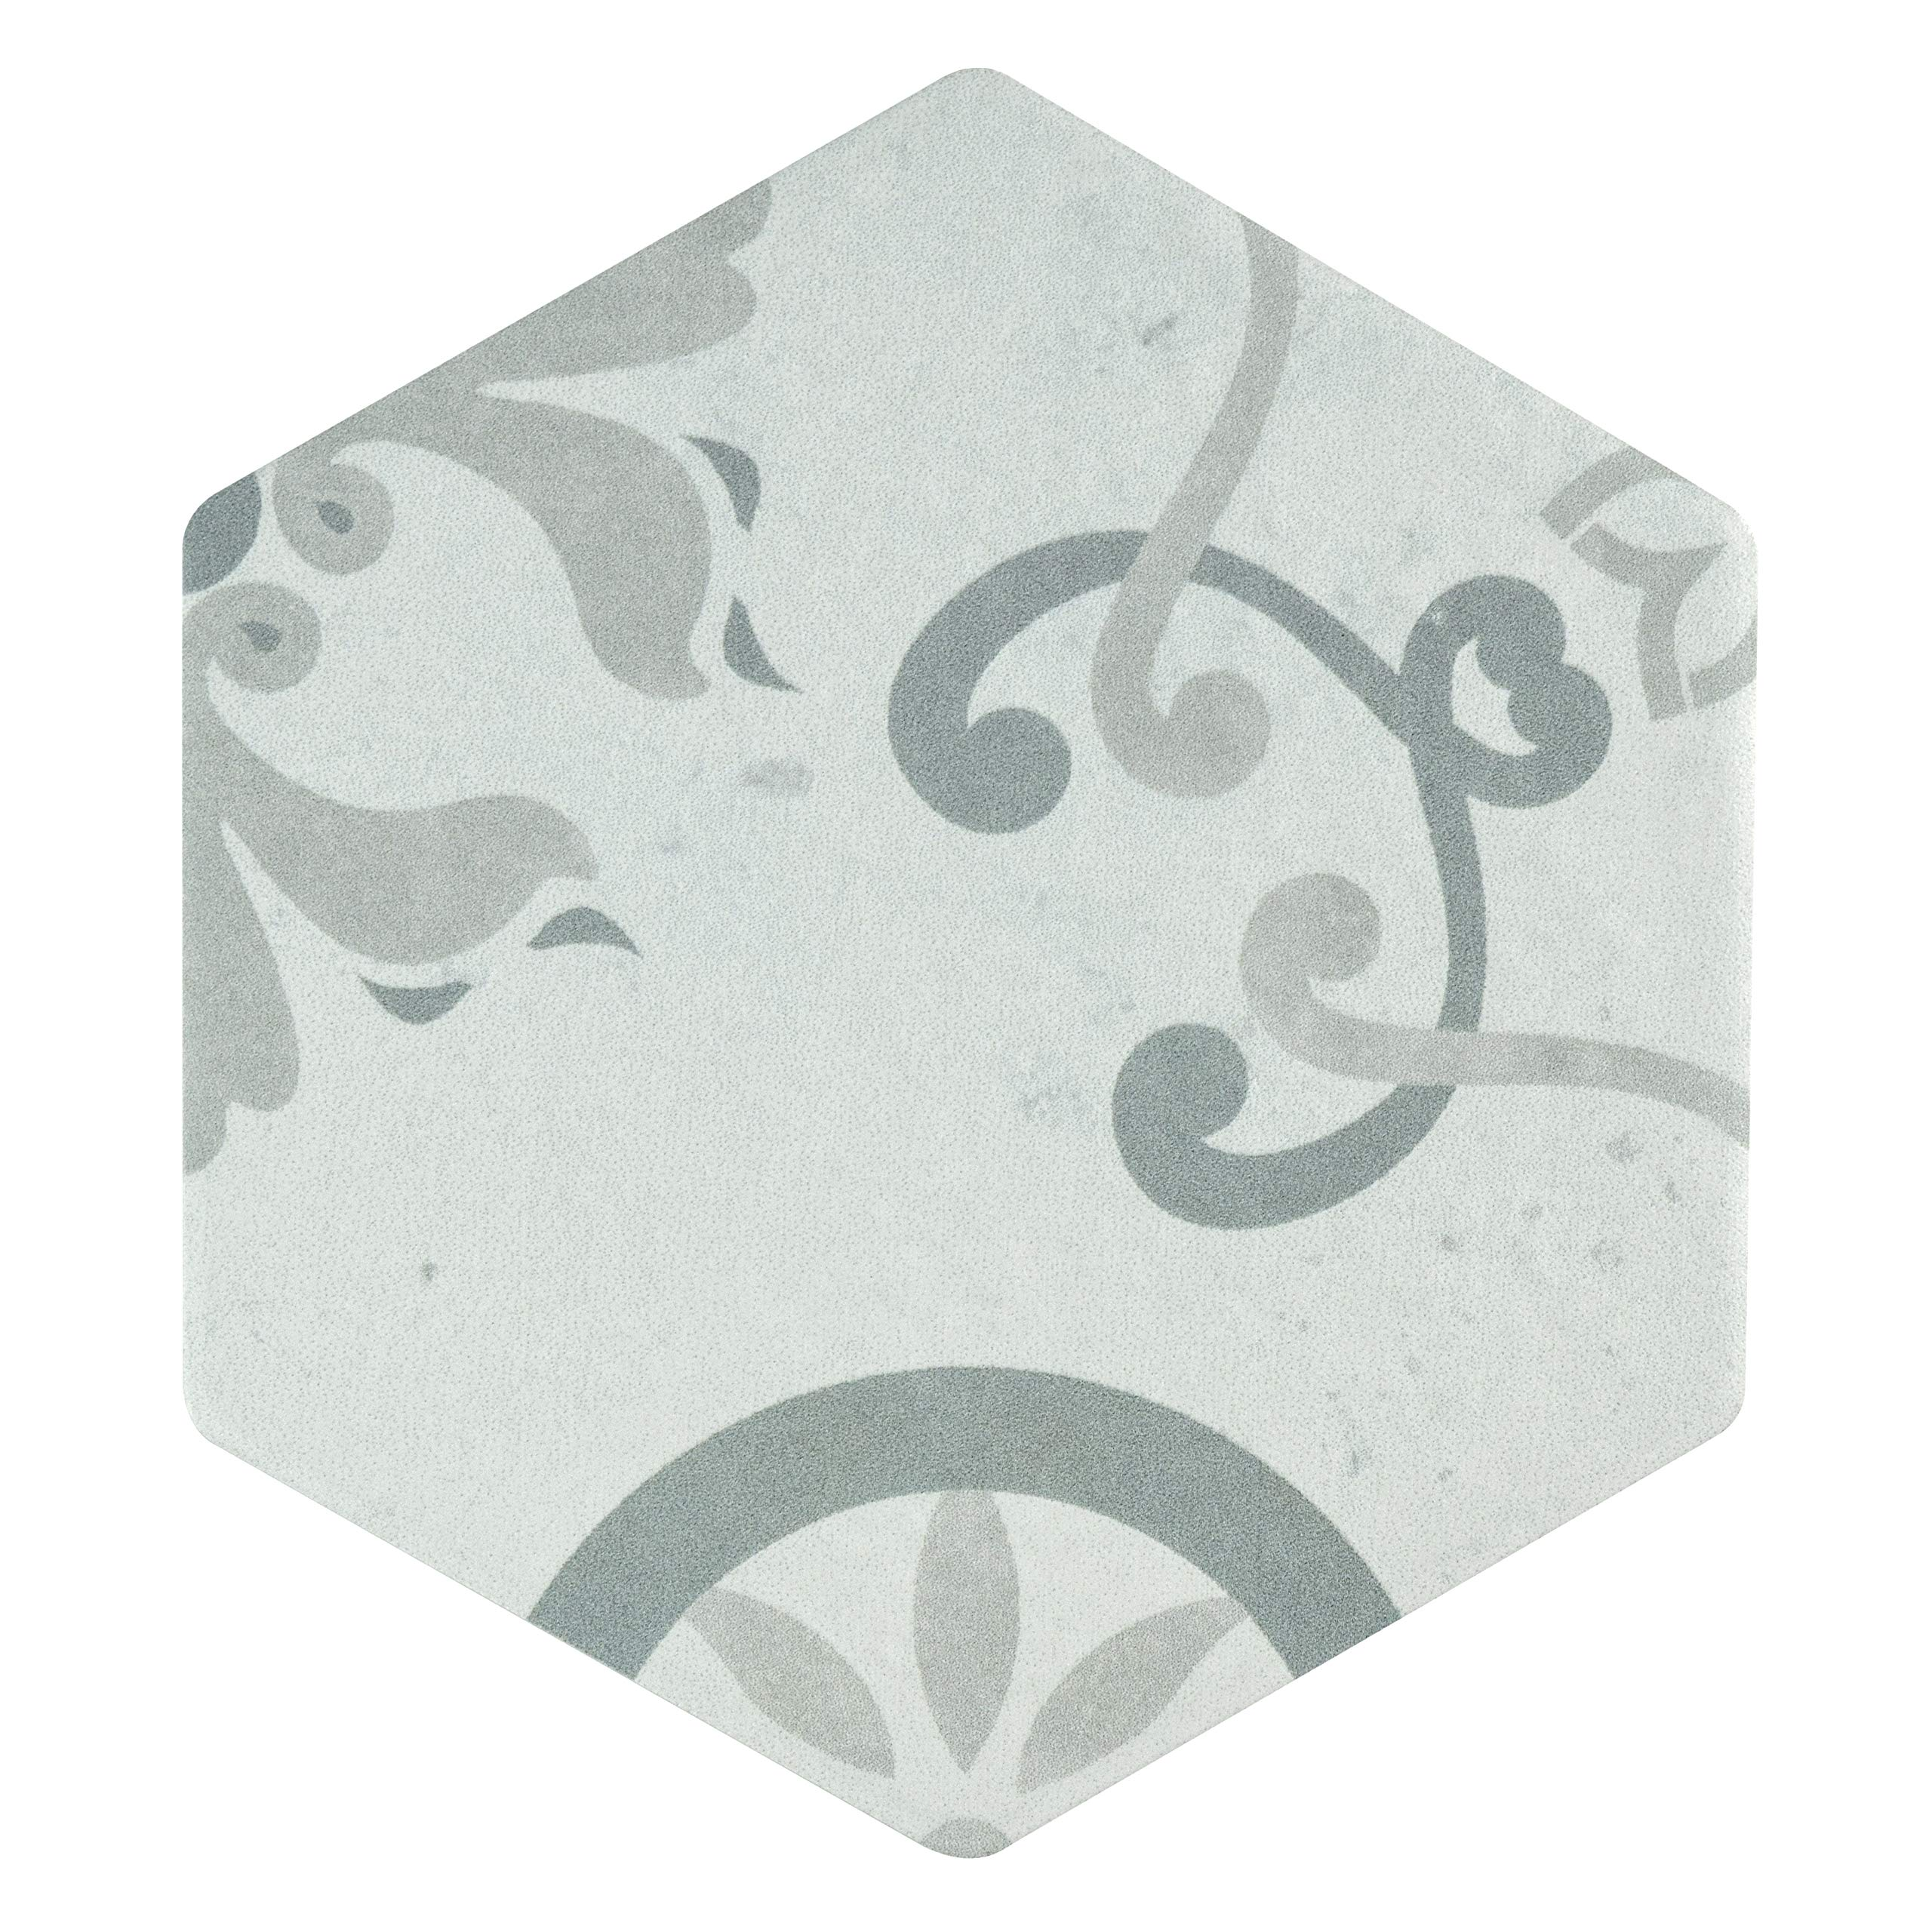 SomerTile FEO6OXDT Roldal Hex Decor Porcelain Floor and Wall, 5.88'' x 6.75'', Trium Tile, Gray